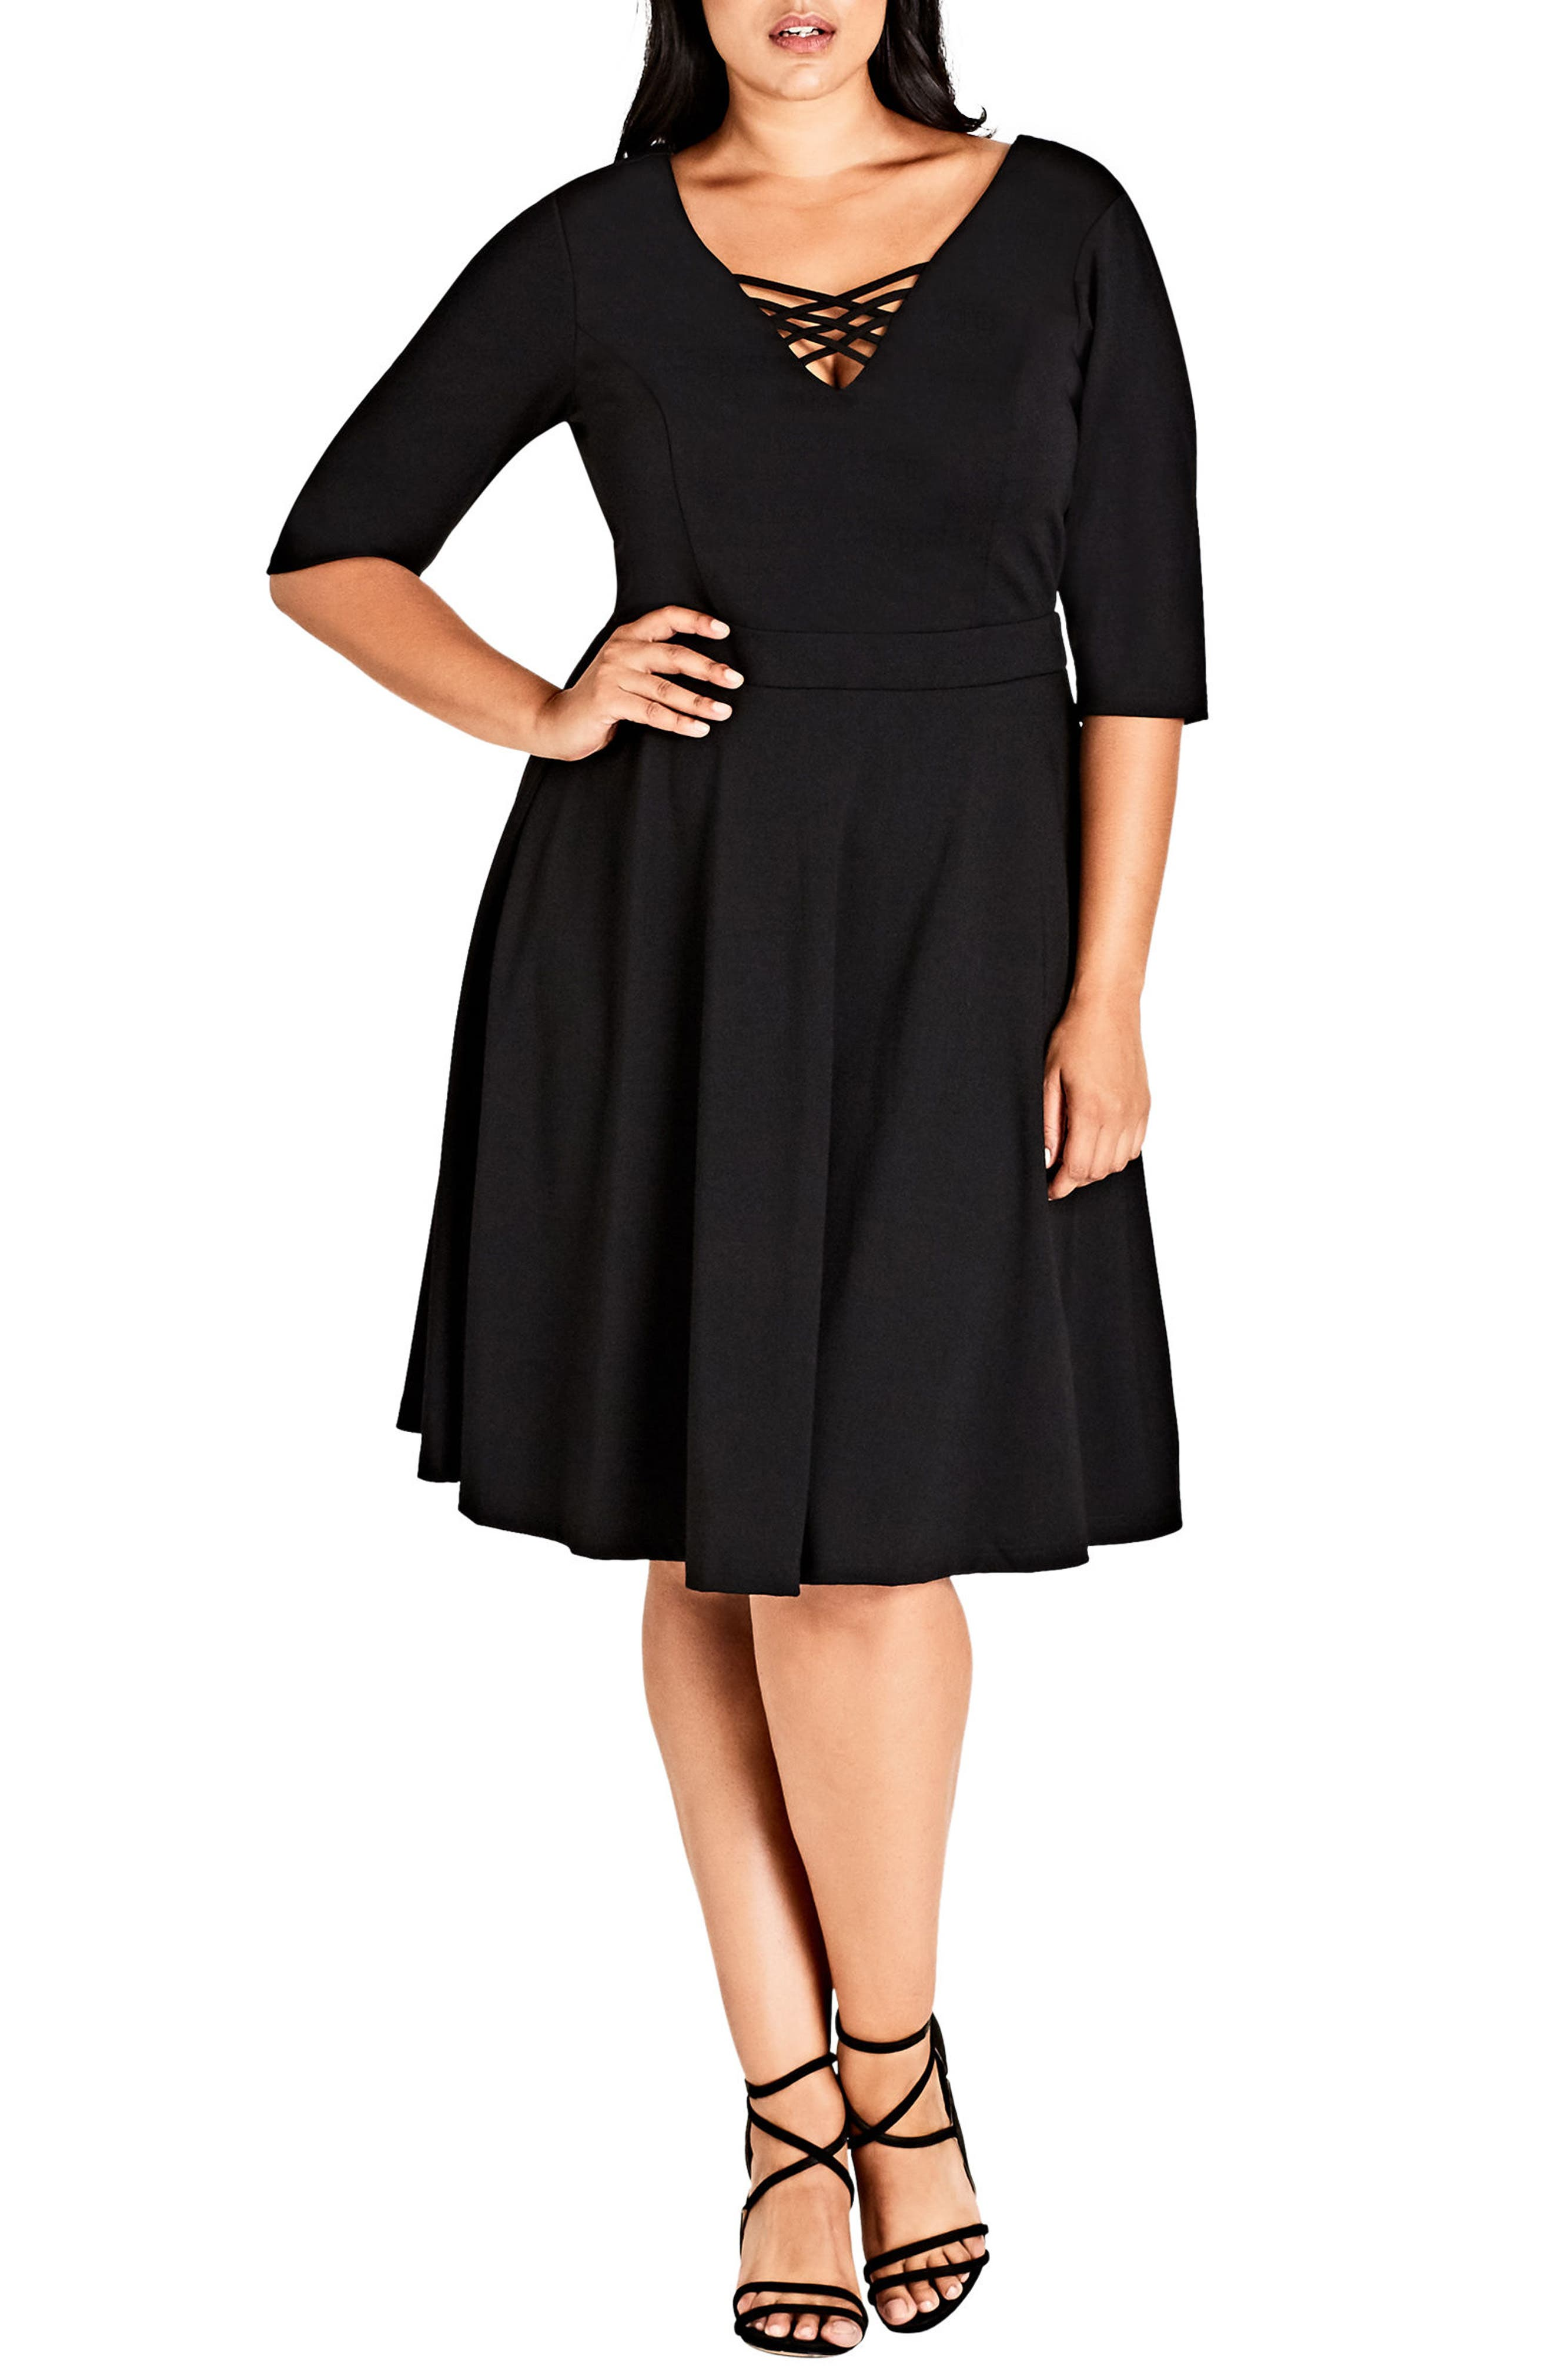 Alternate Image 1 Selected - City Chic X Front Skater Dress (Plus Size)